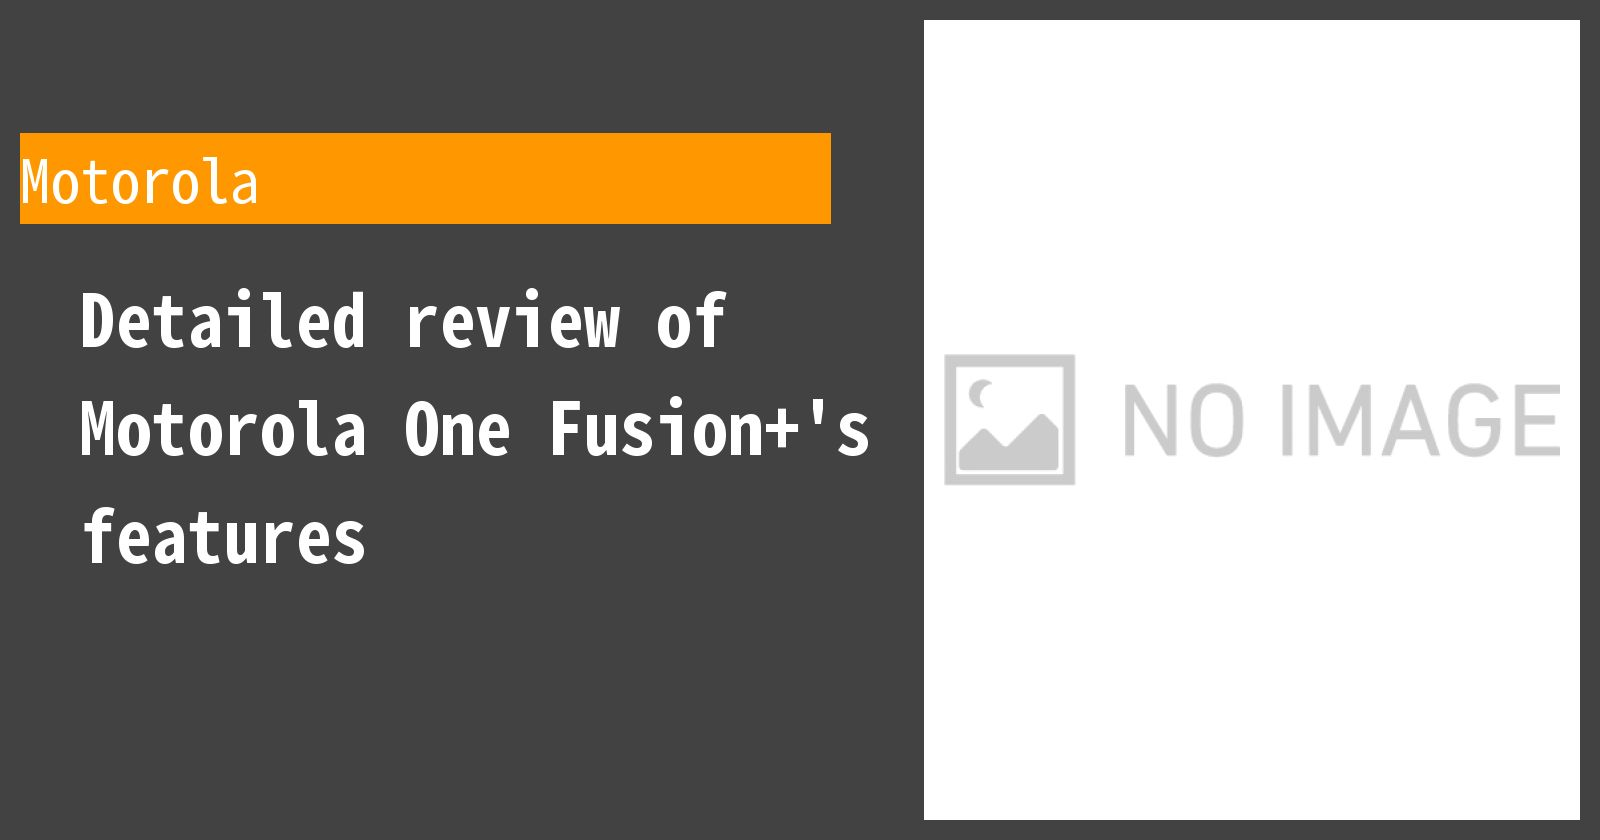 Detailed review of Motorola One Fusion+'s features